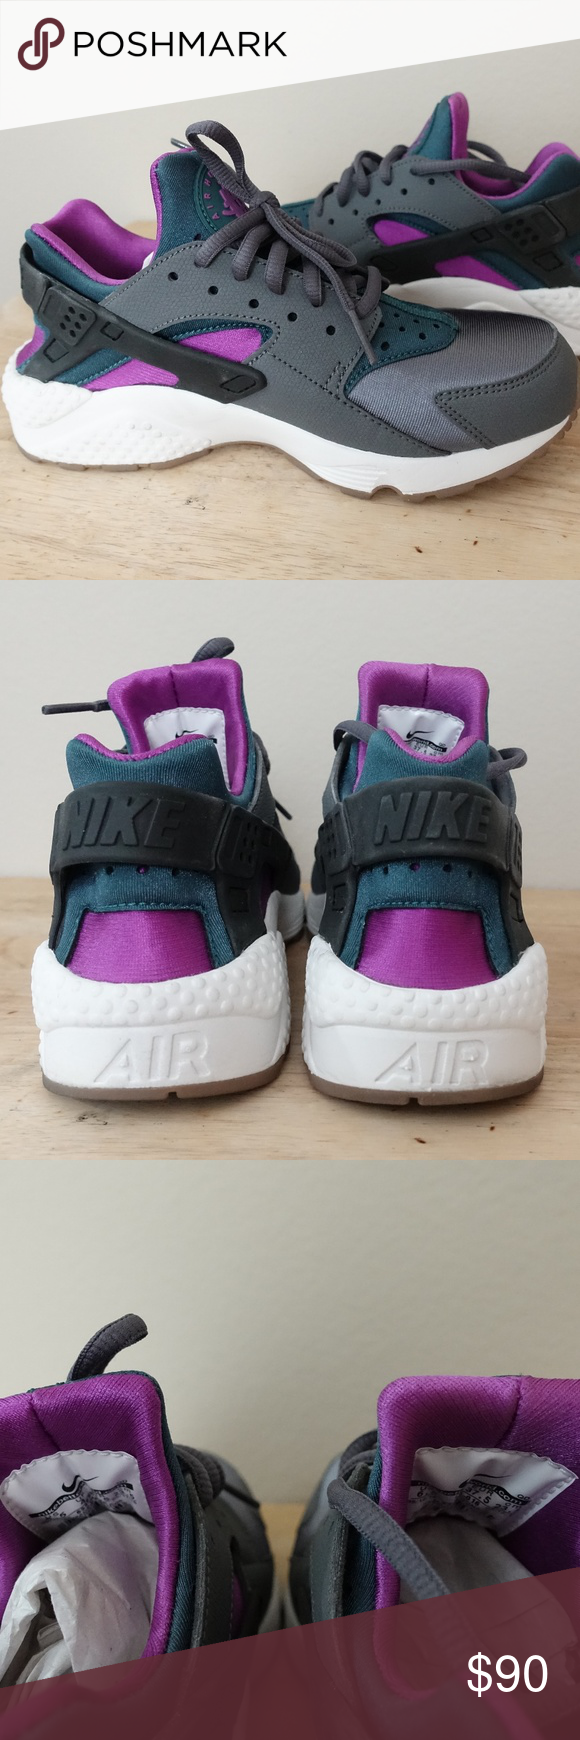 75c030cf44a5 Nike Women s Huarache Run Dark Grey Teal Sneakers Nike Women s Huarache Run Dark  Grey Teal Sneakers 6.5 - Worn once but these are too small on me ...